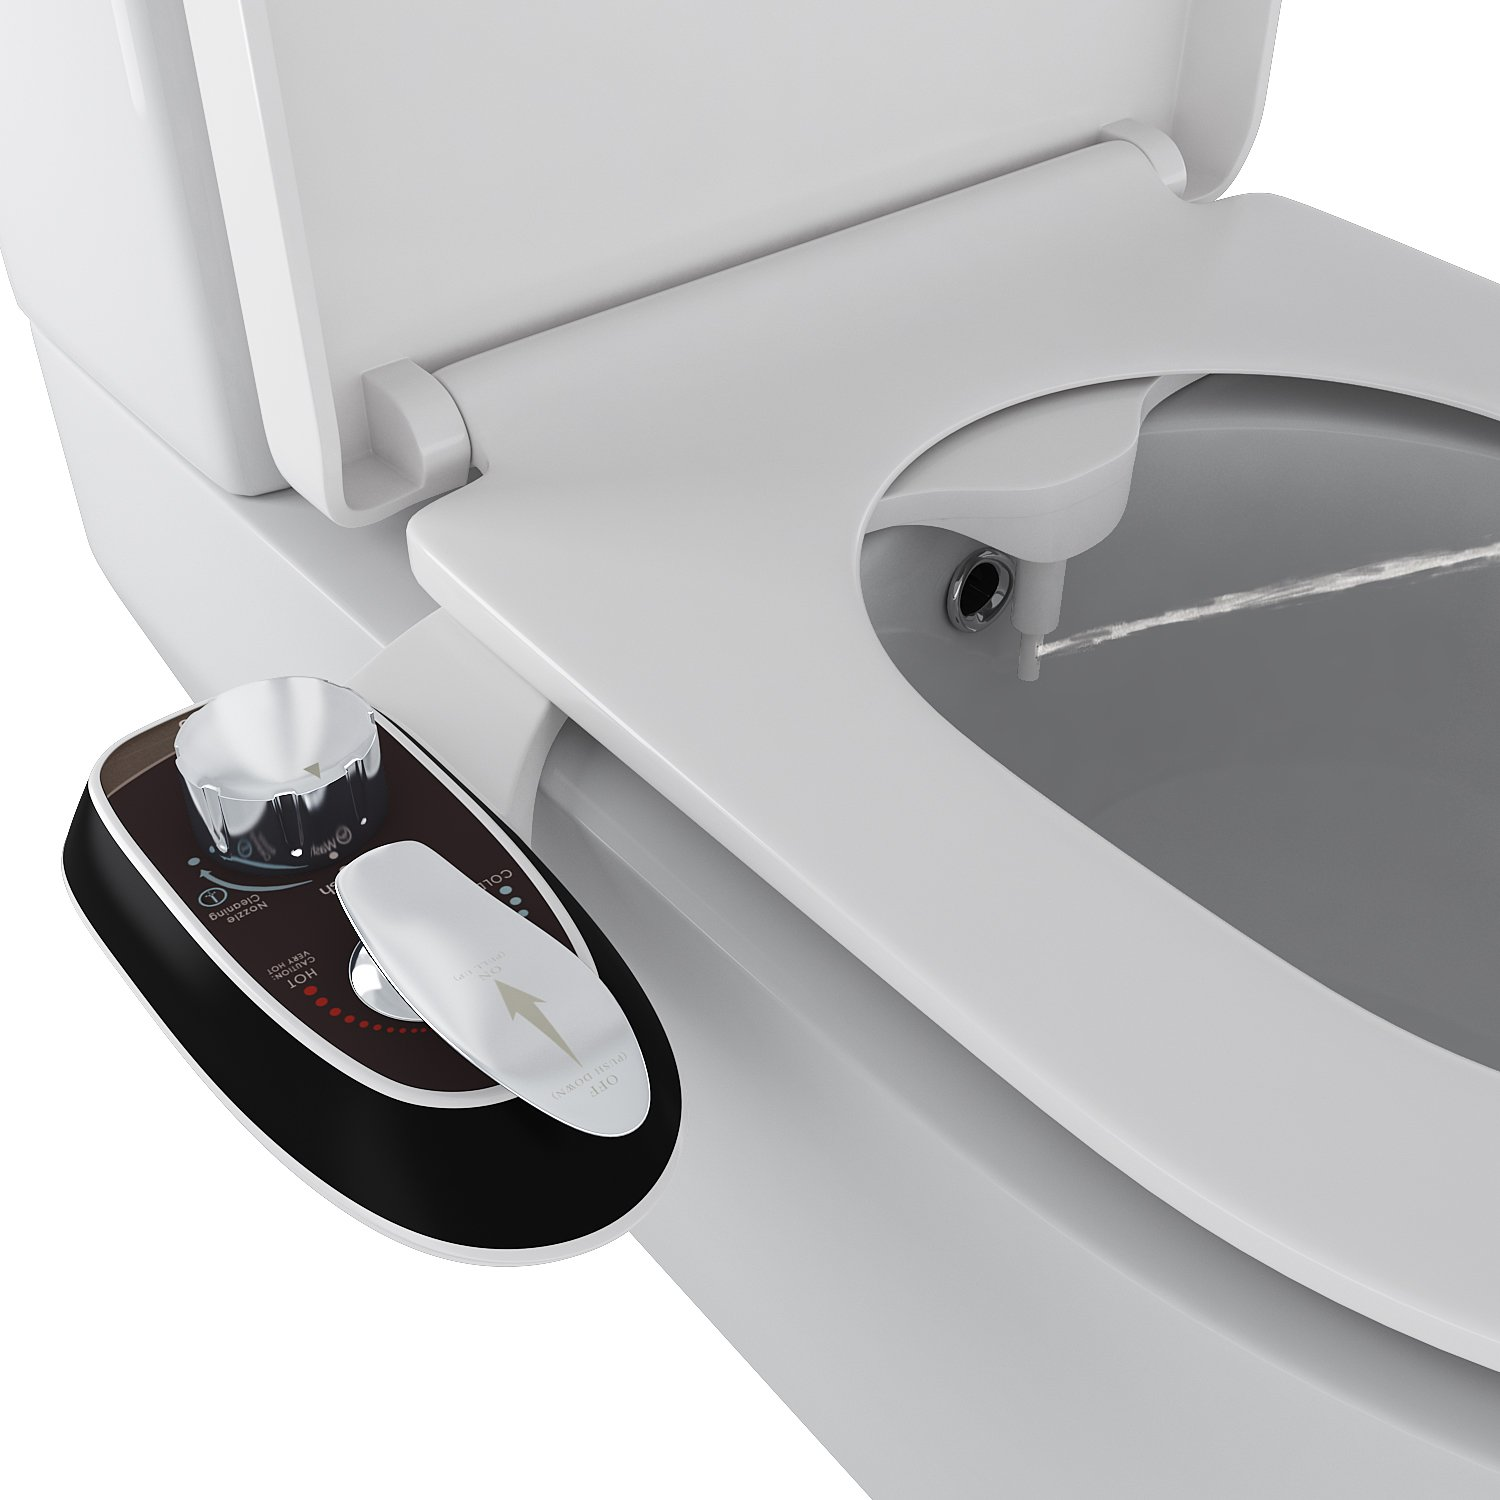 Homdox Adjustable Toilet Seat Attachment - Non-Electric Bidet - Dual Single Nozzle for Front & Rear(Male & Female) - Self Cleaning - Water Pressure Control - Easy Installation (Single Nozzle - Black)